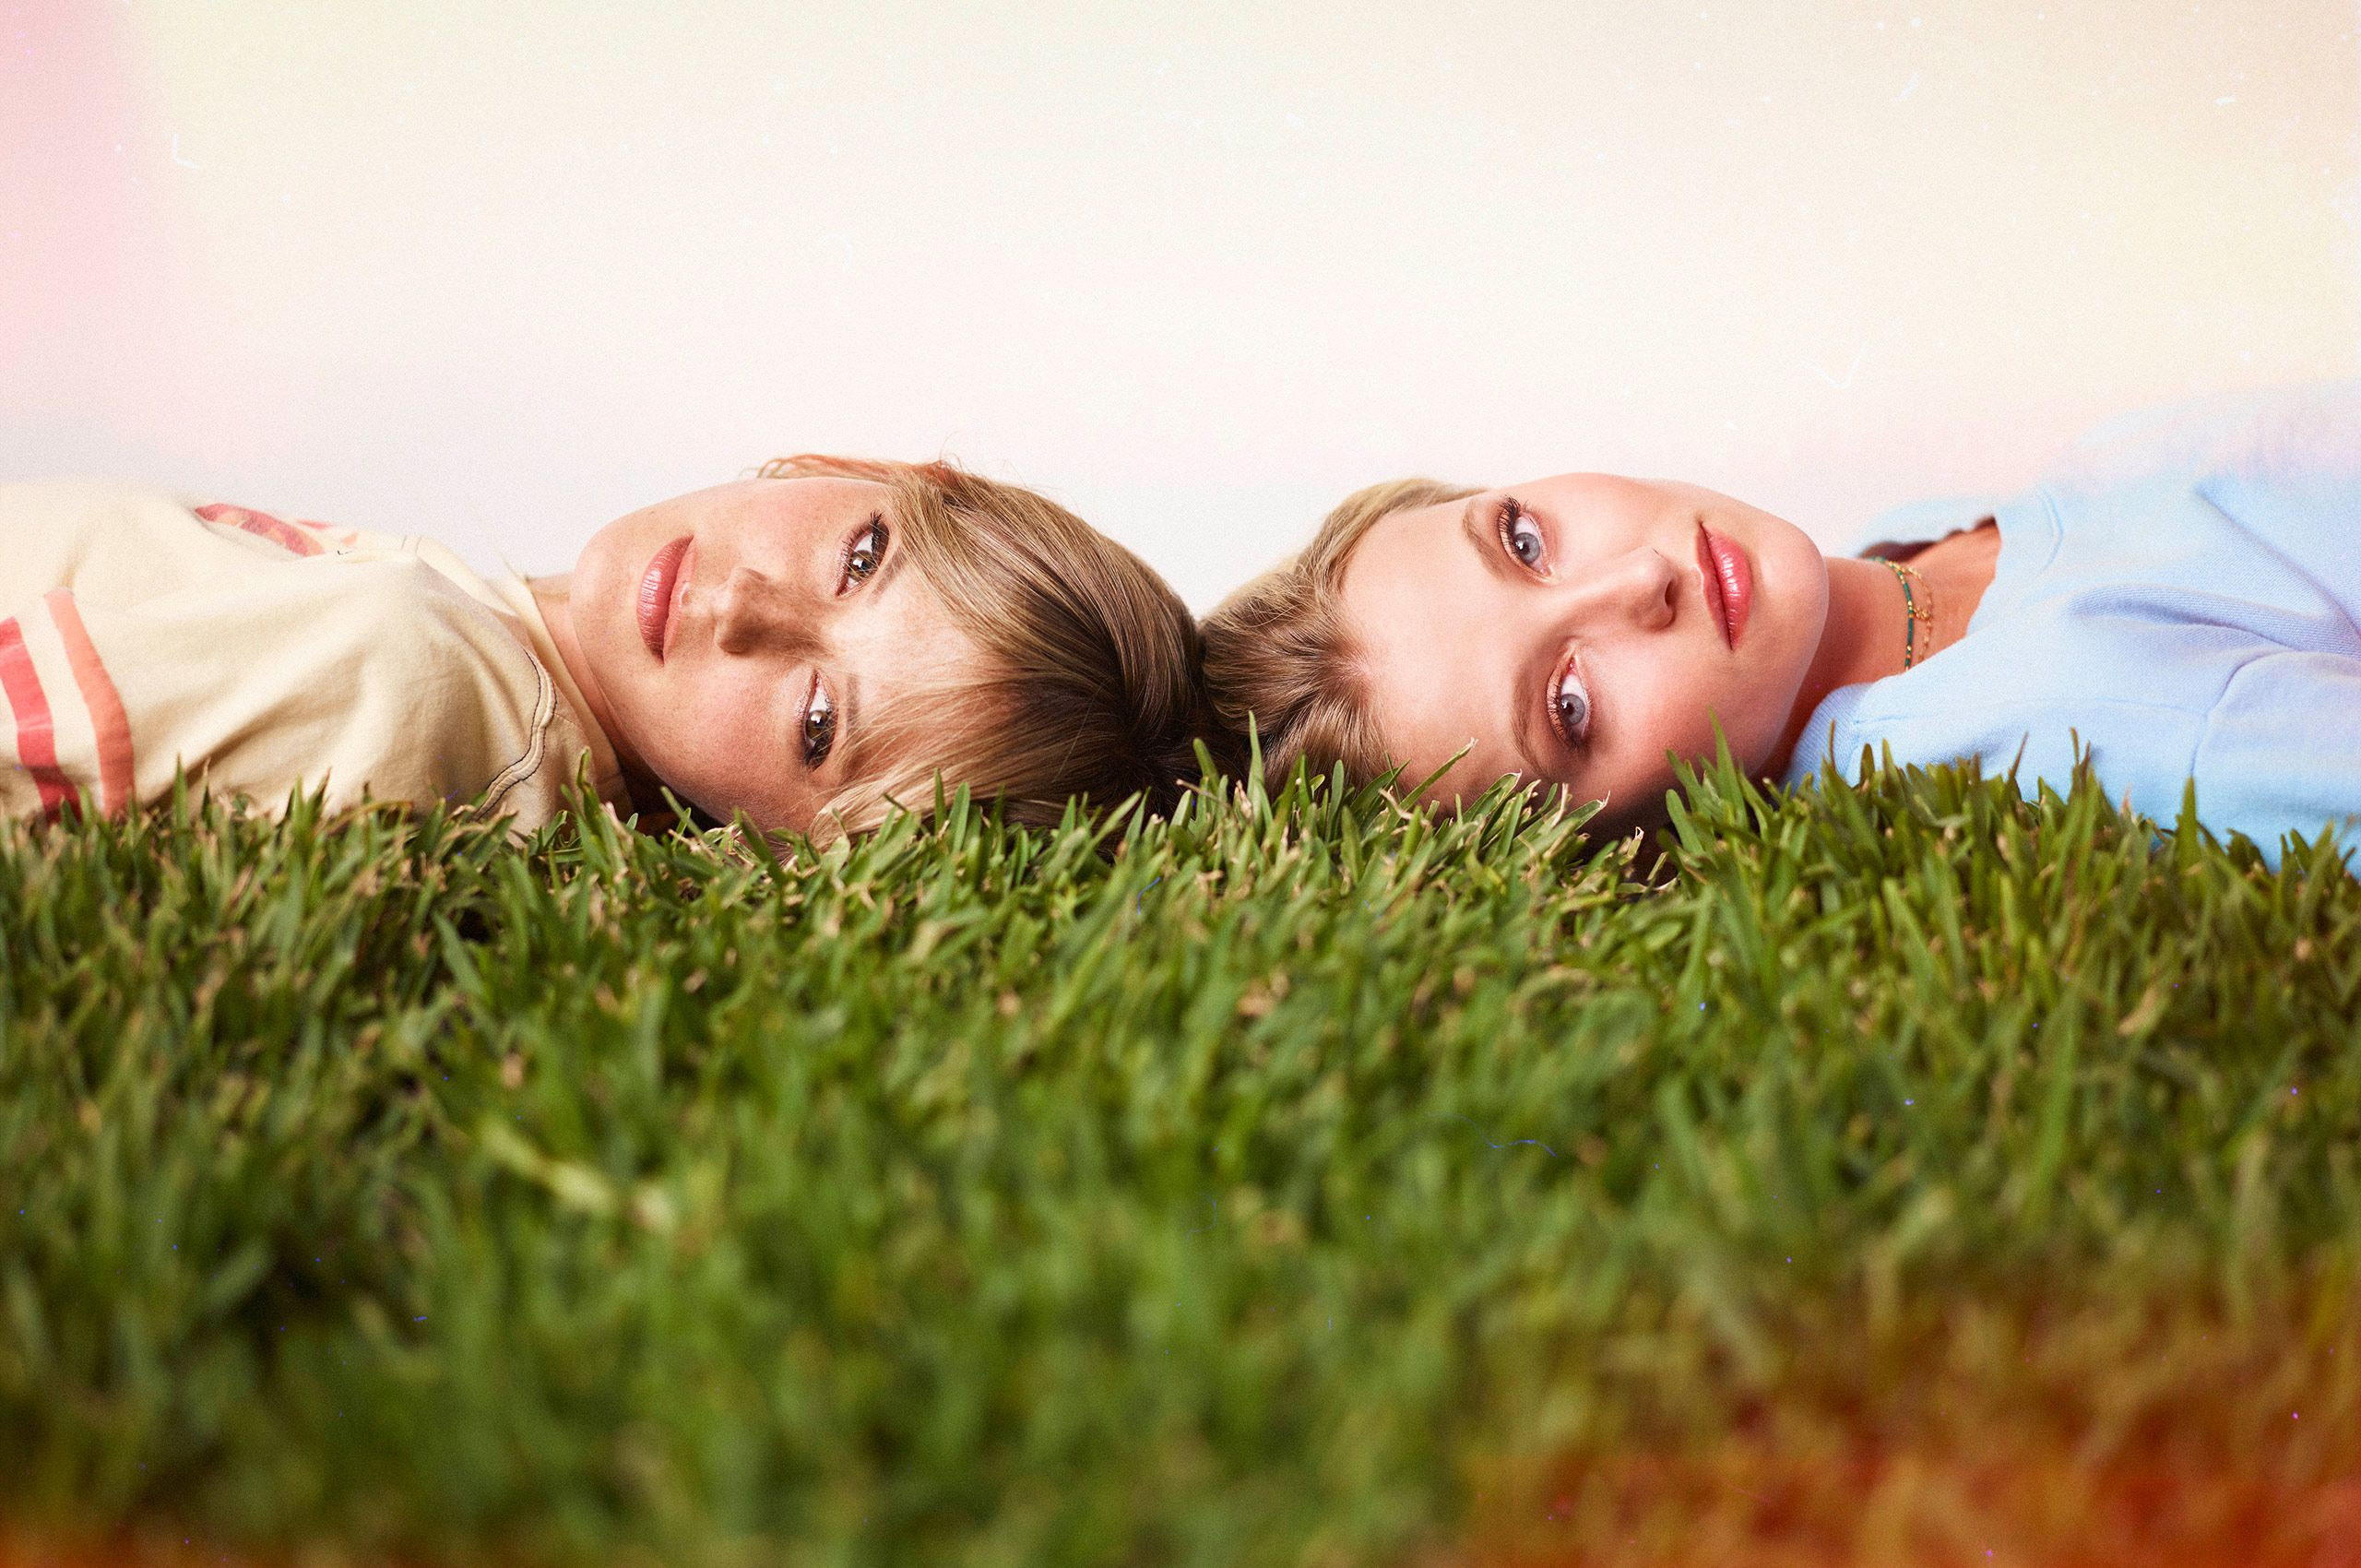 GIRLS-ON-GRASS_POSTER-IMAGE.jpg